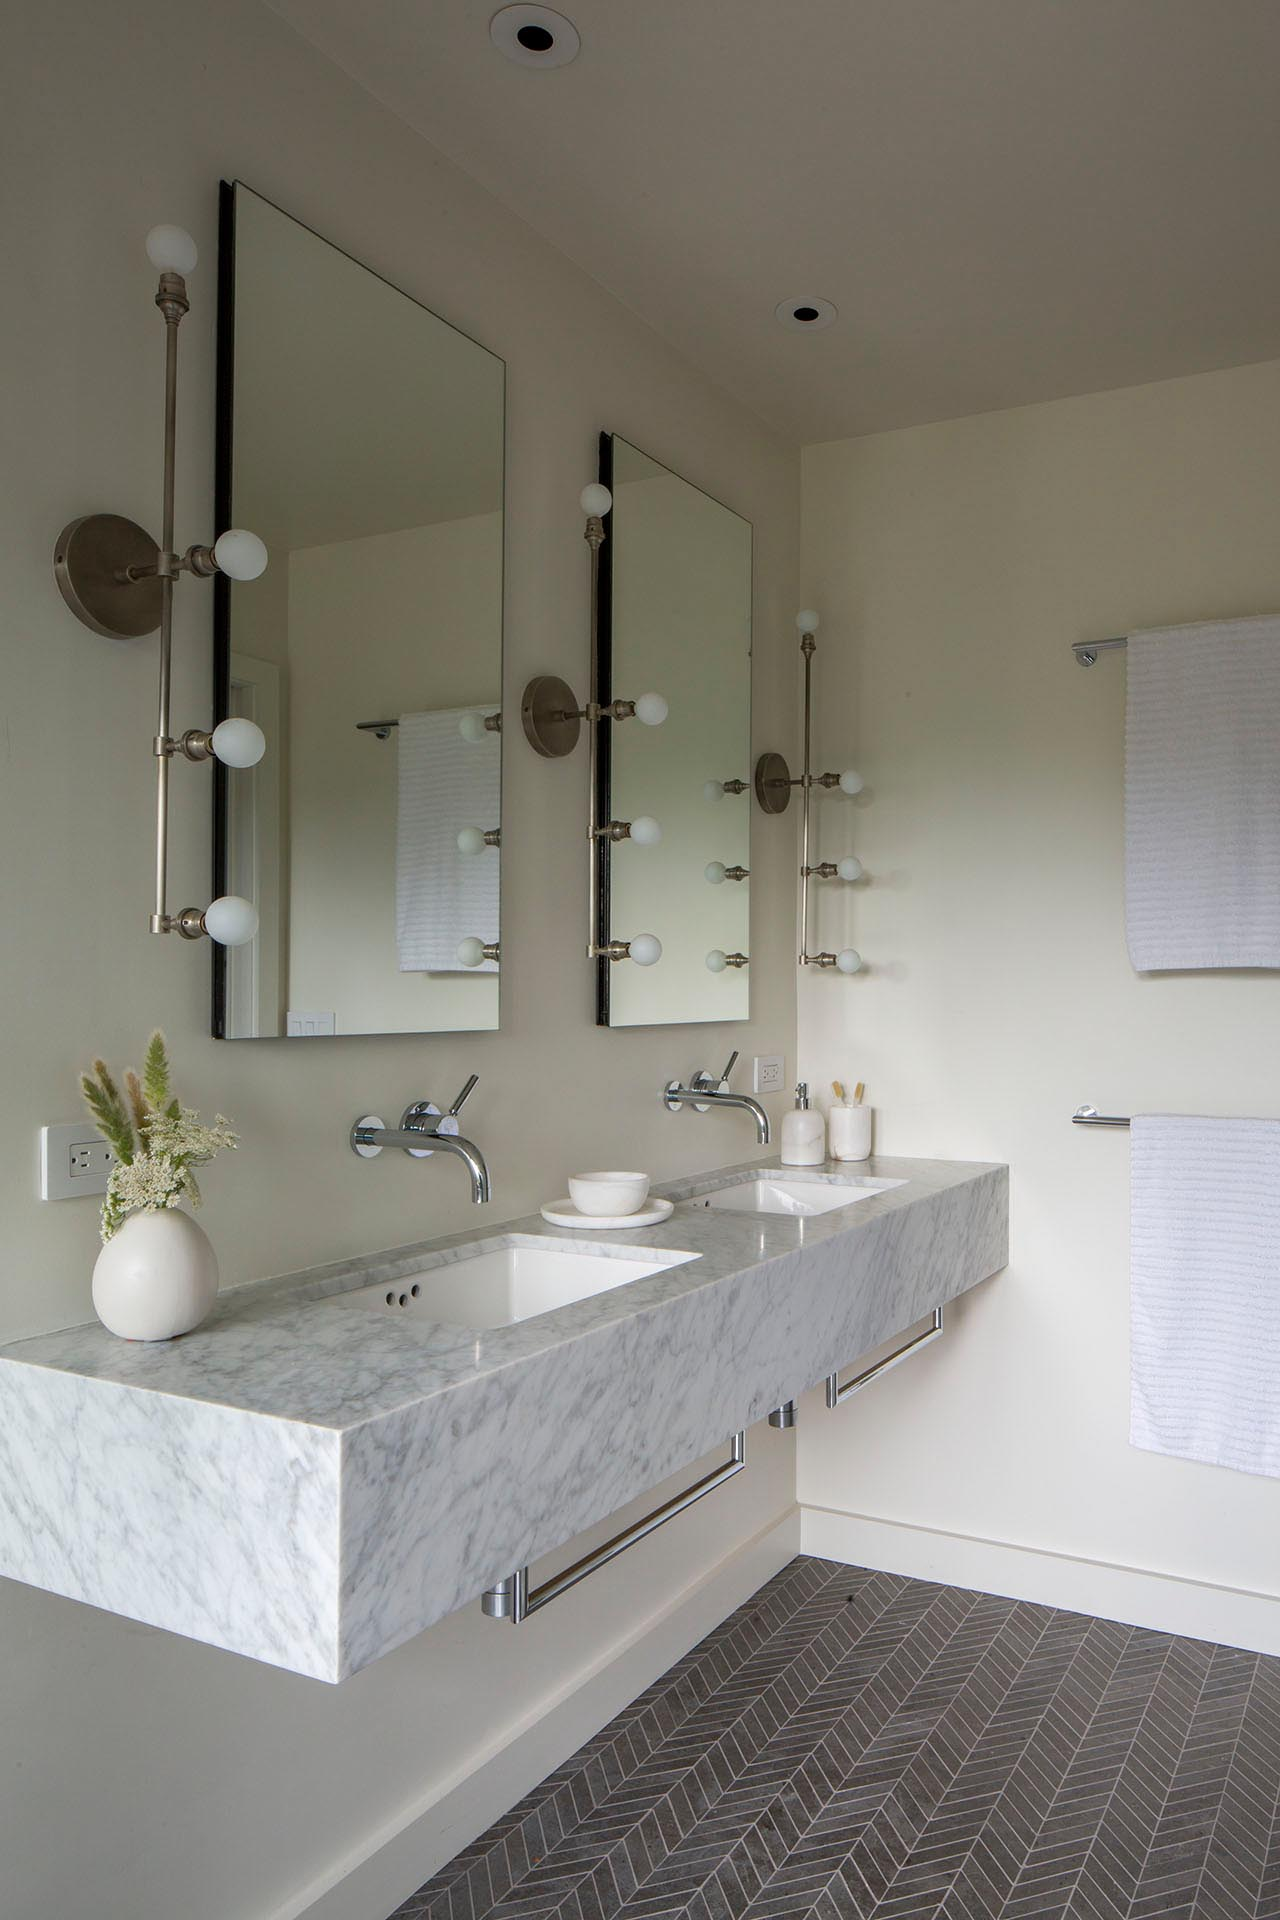 A modern bathroom with a floating vanity and patterned tile flooring.